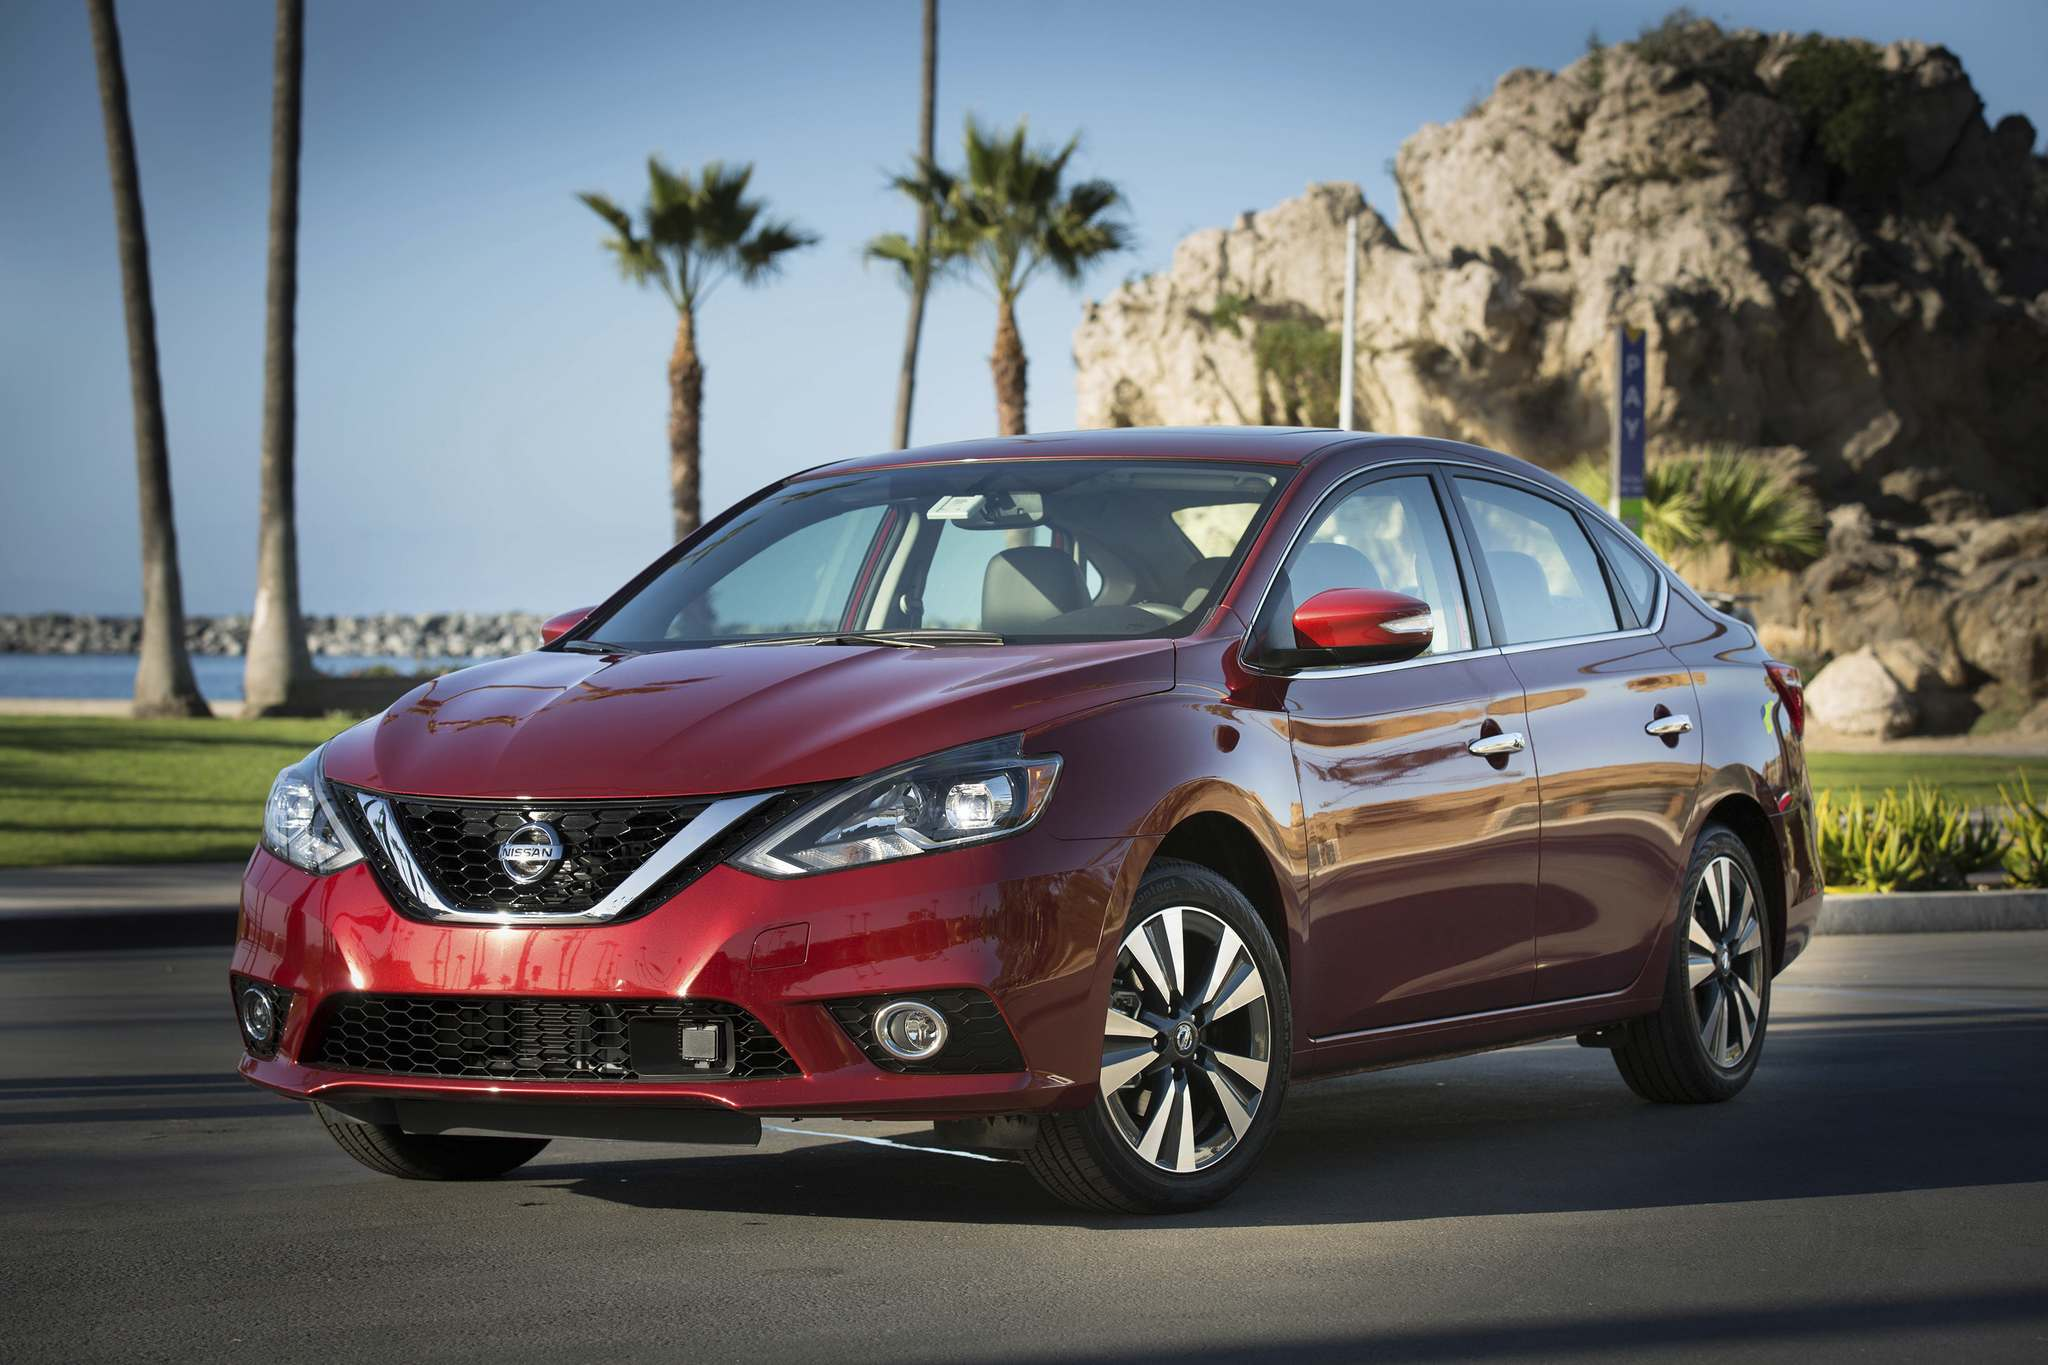 NISSANThe Nissan Sentra earned a superior rating in the IIHS's front crash-prevention testing.